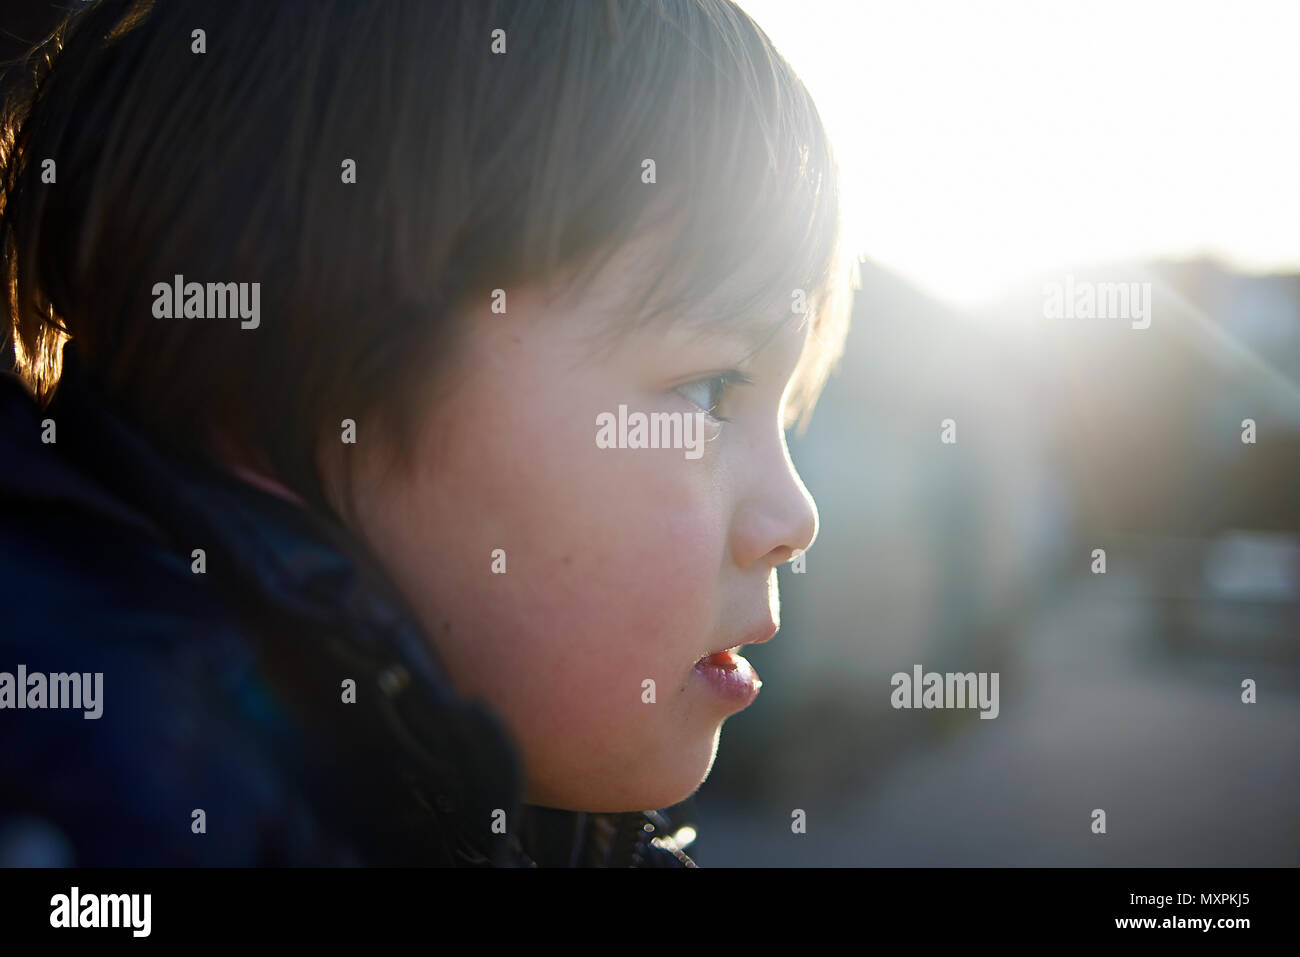 Side profile view of a young preteen Japanese boy in autums sunshine at a school playground - Stock Image